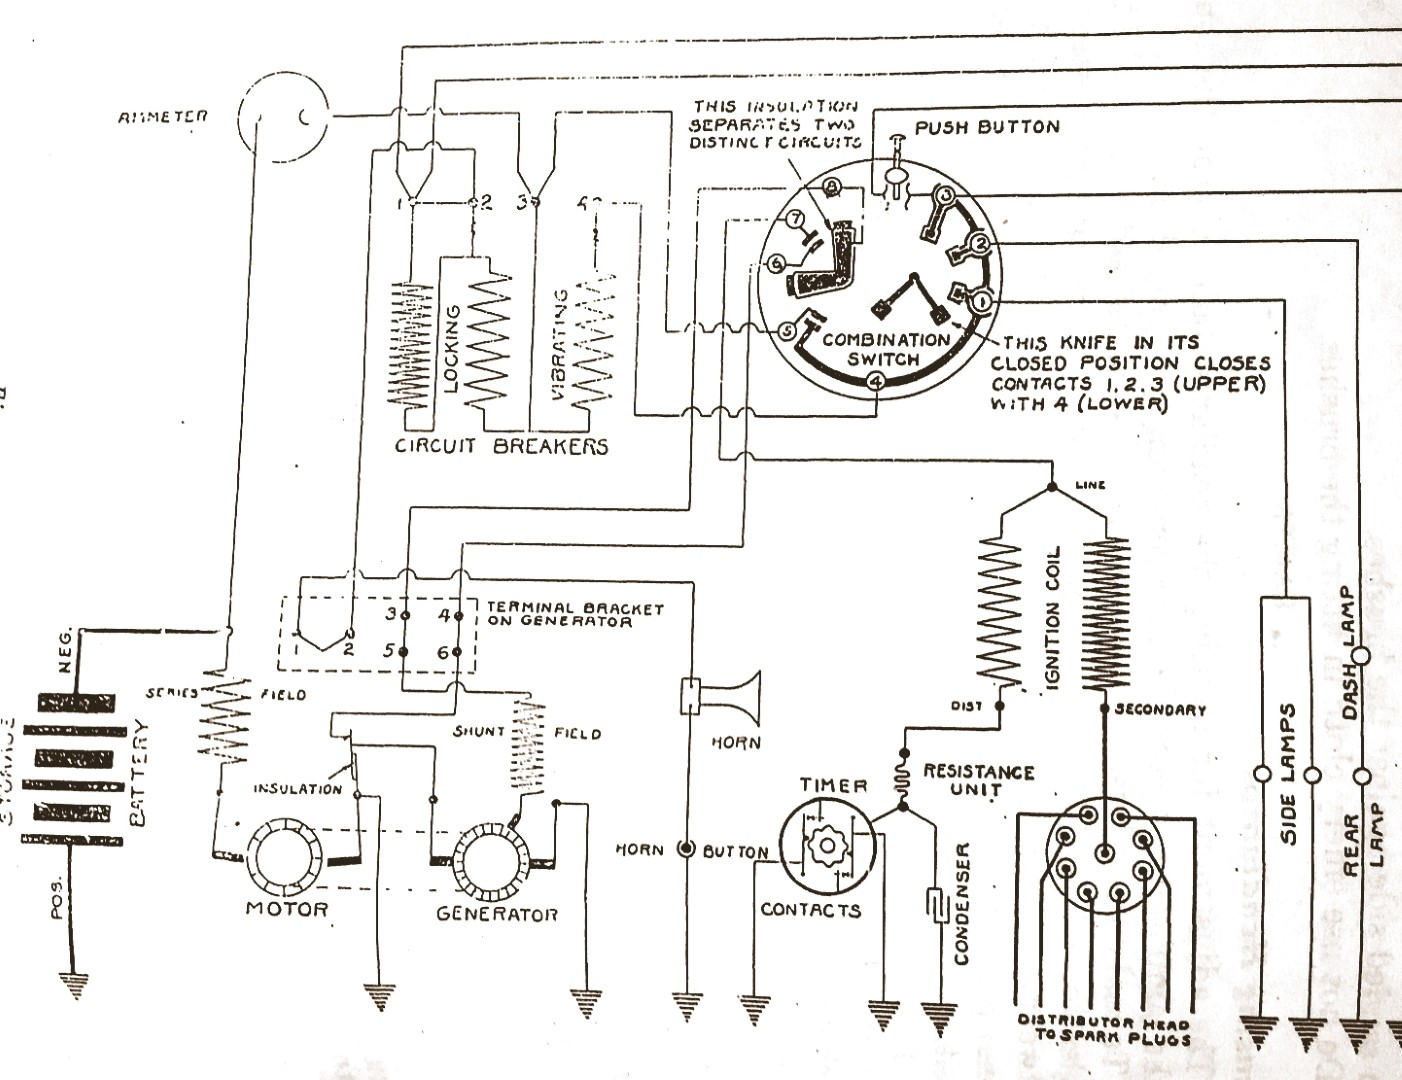 hight resolution of delco 1920 starter generator question buick pre war technical wiring diagrams of 1921 buick model 6 21 delco equipment